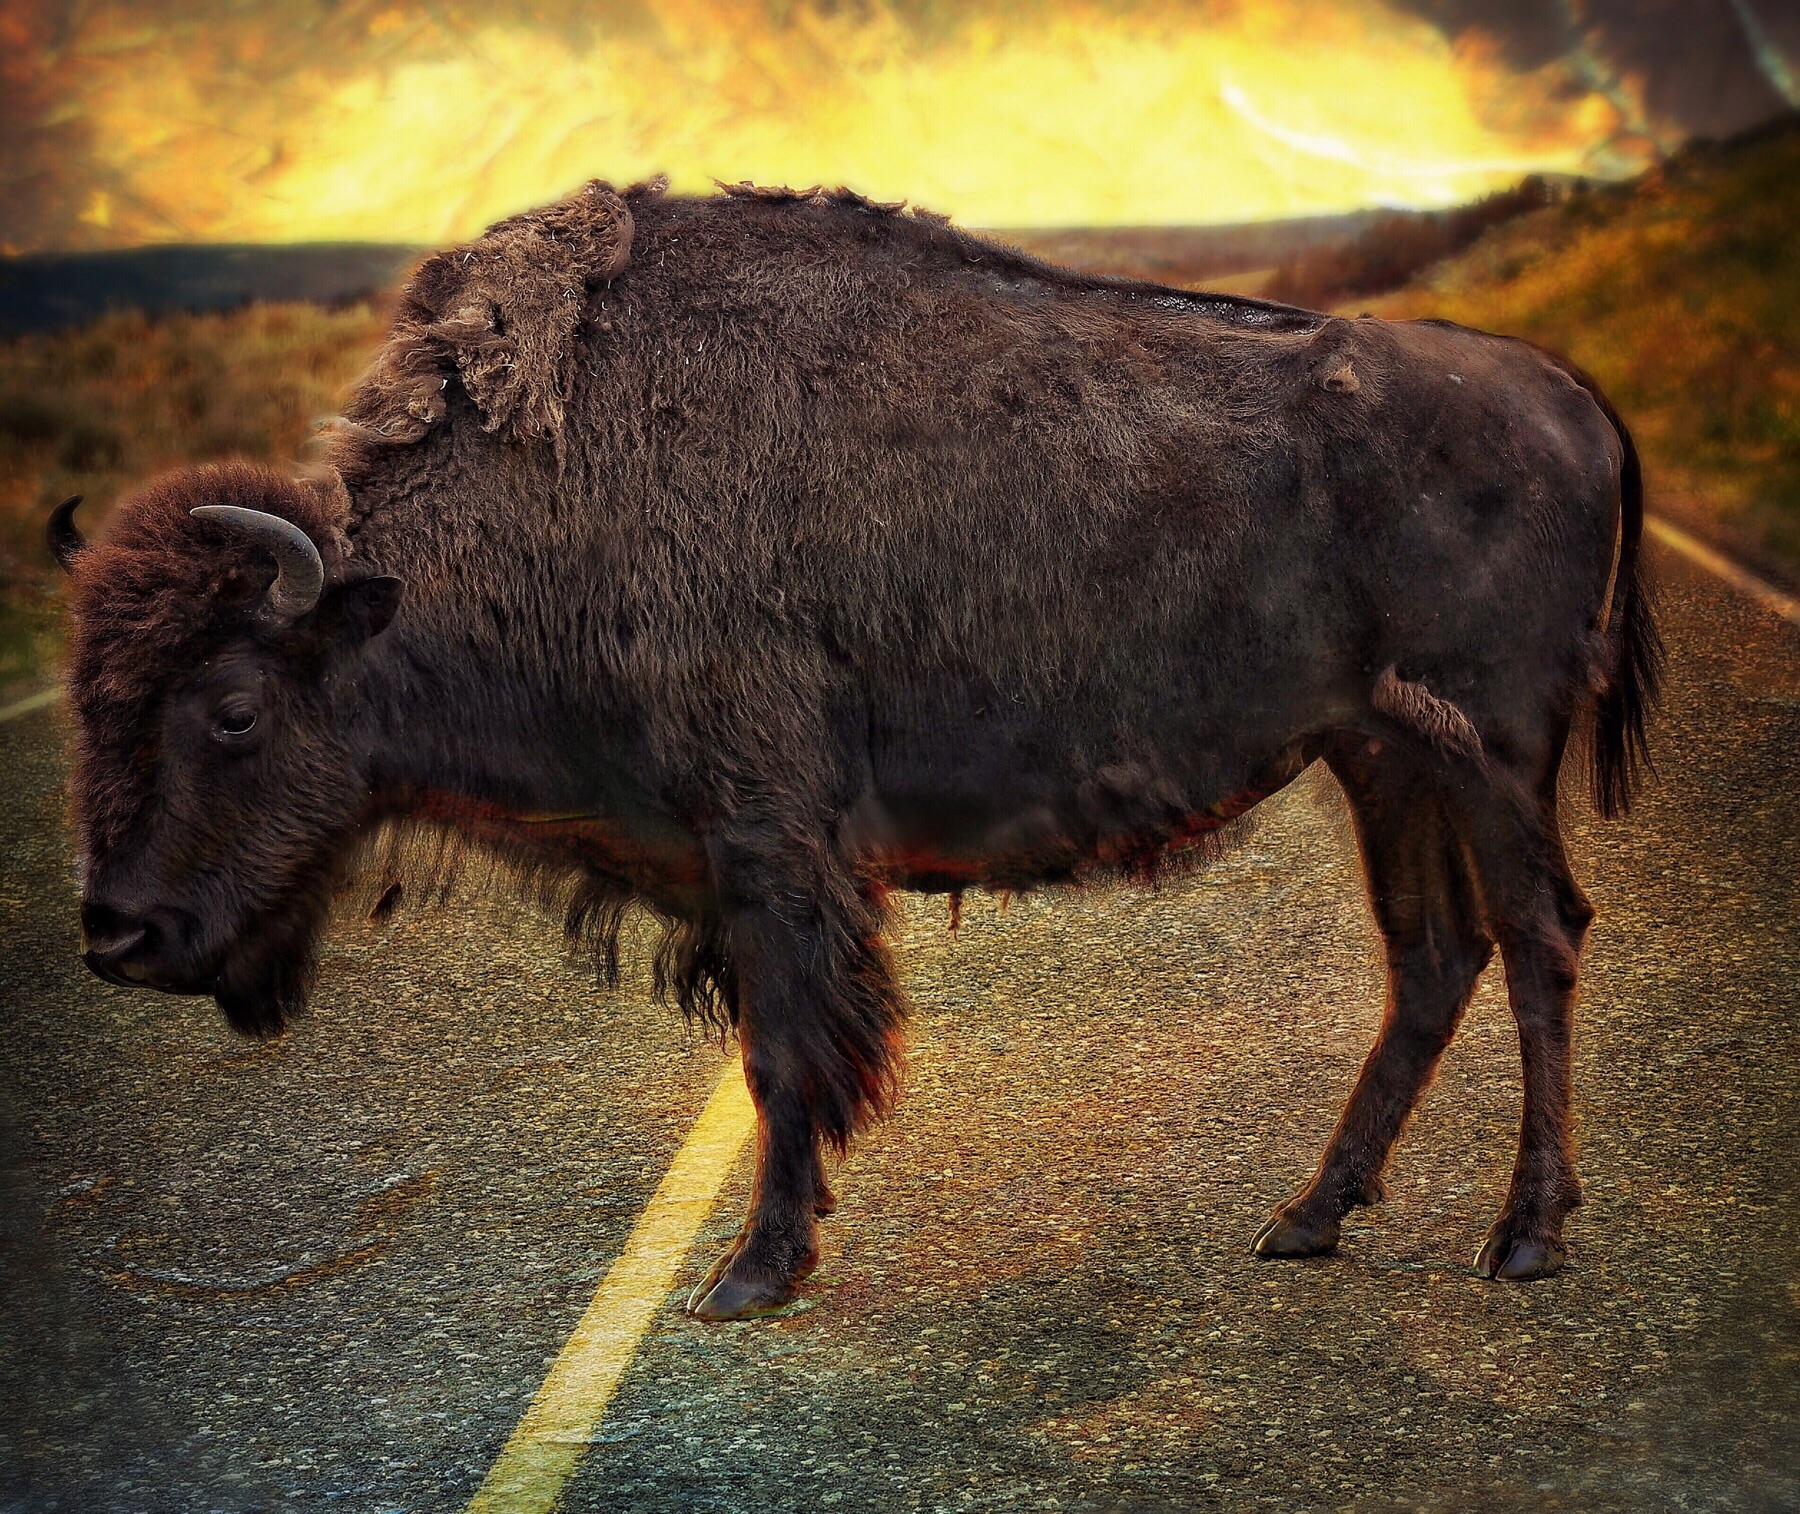 Bison know they're bad.